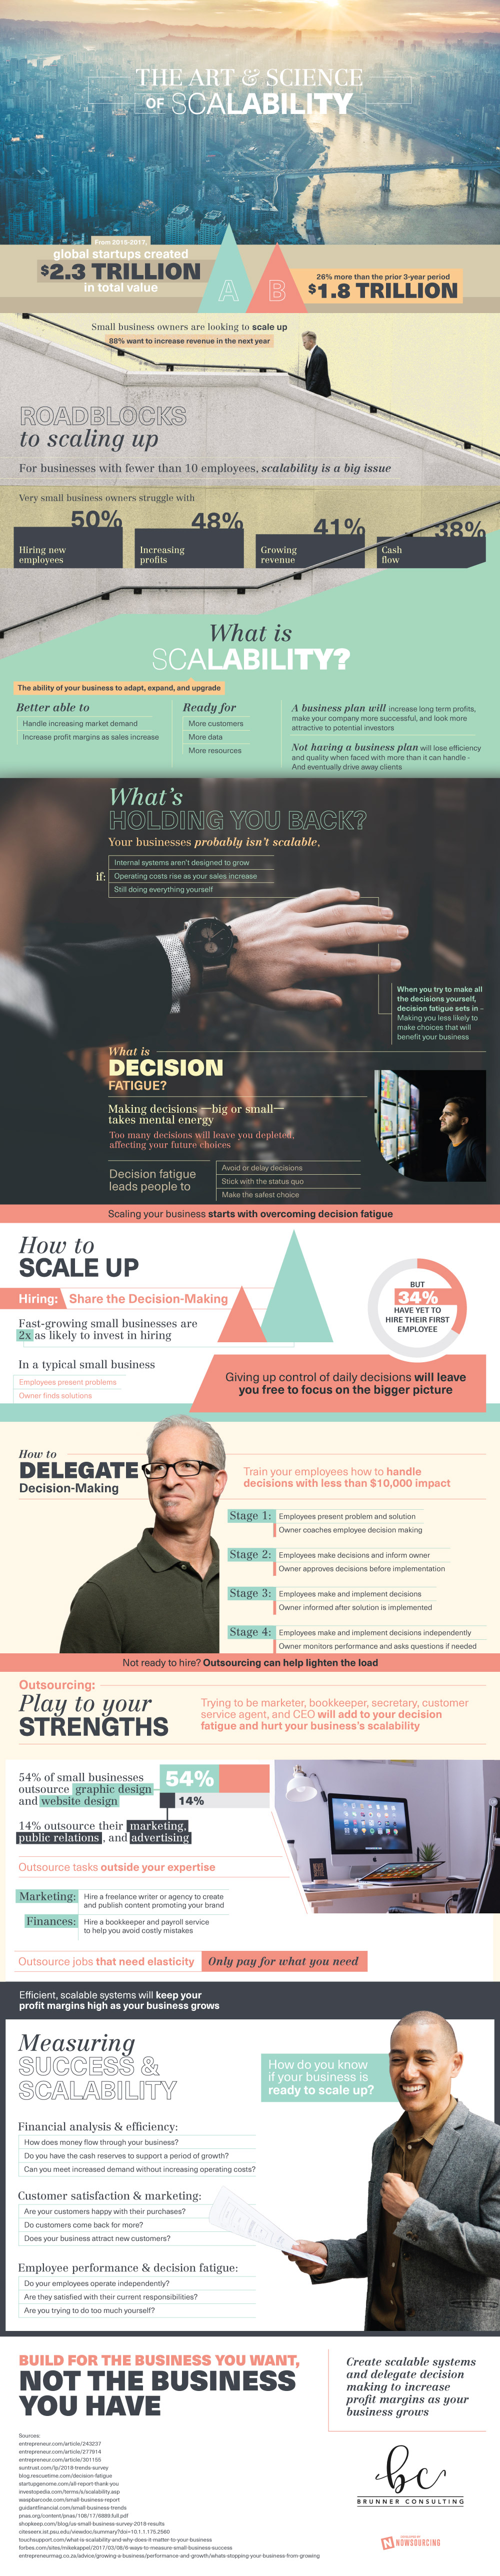 THE ART & SCIENCE OF SCALABILITY [infographic]